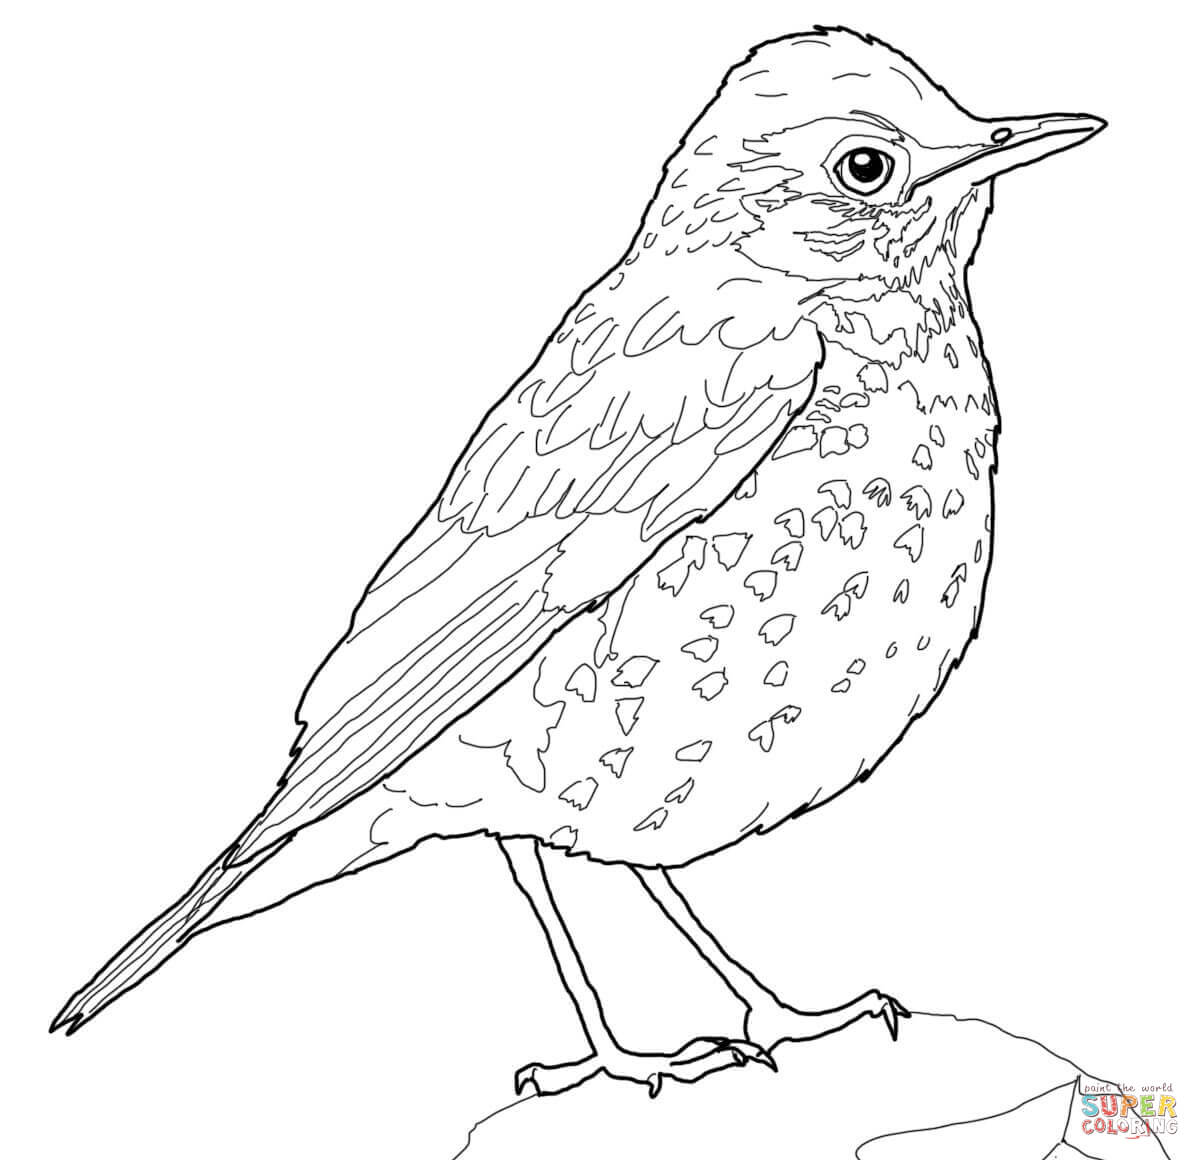 Drawn brds baby bird Pages Thrush Thrush Pages Free